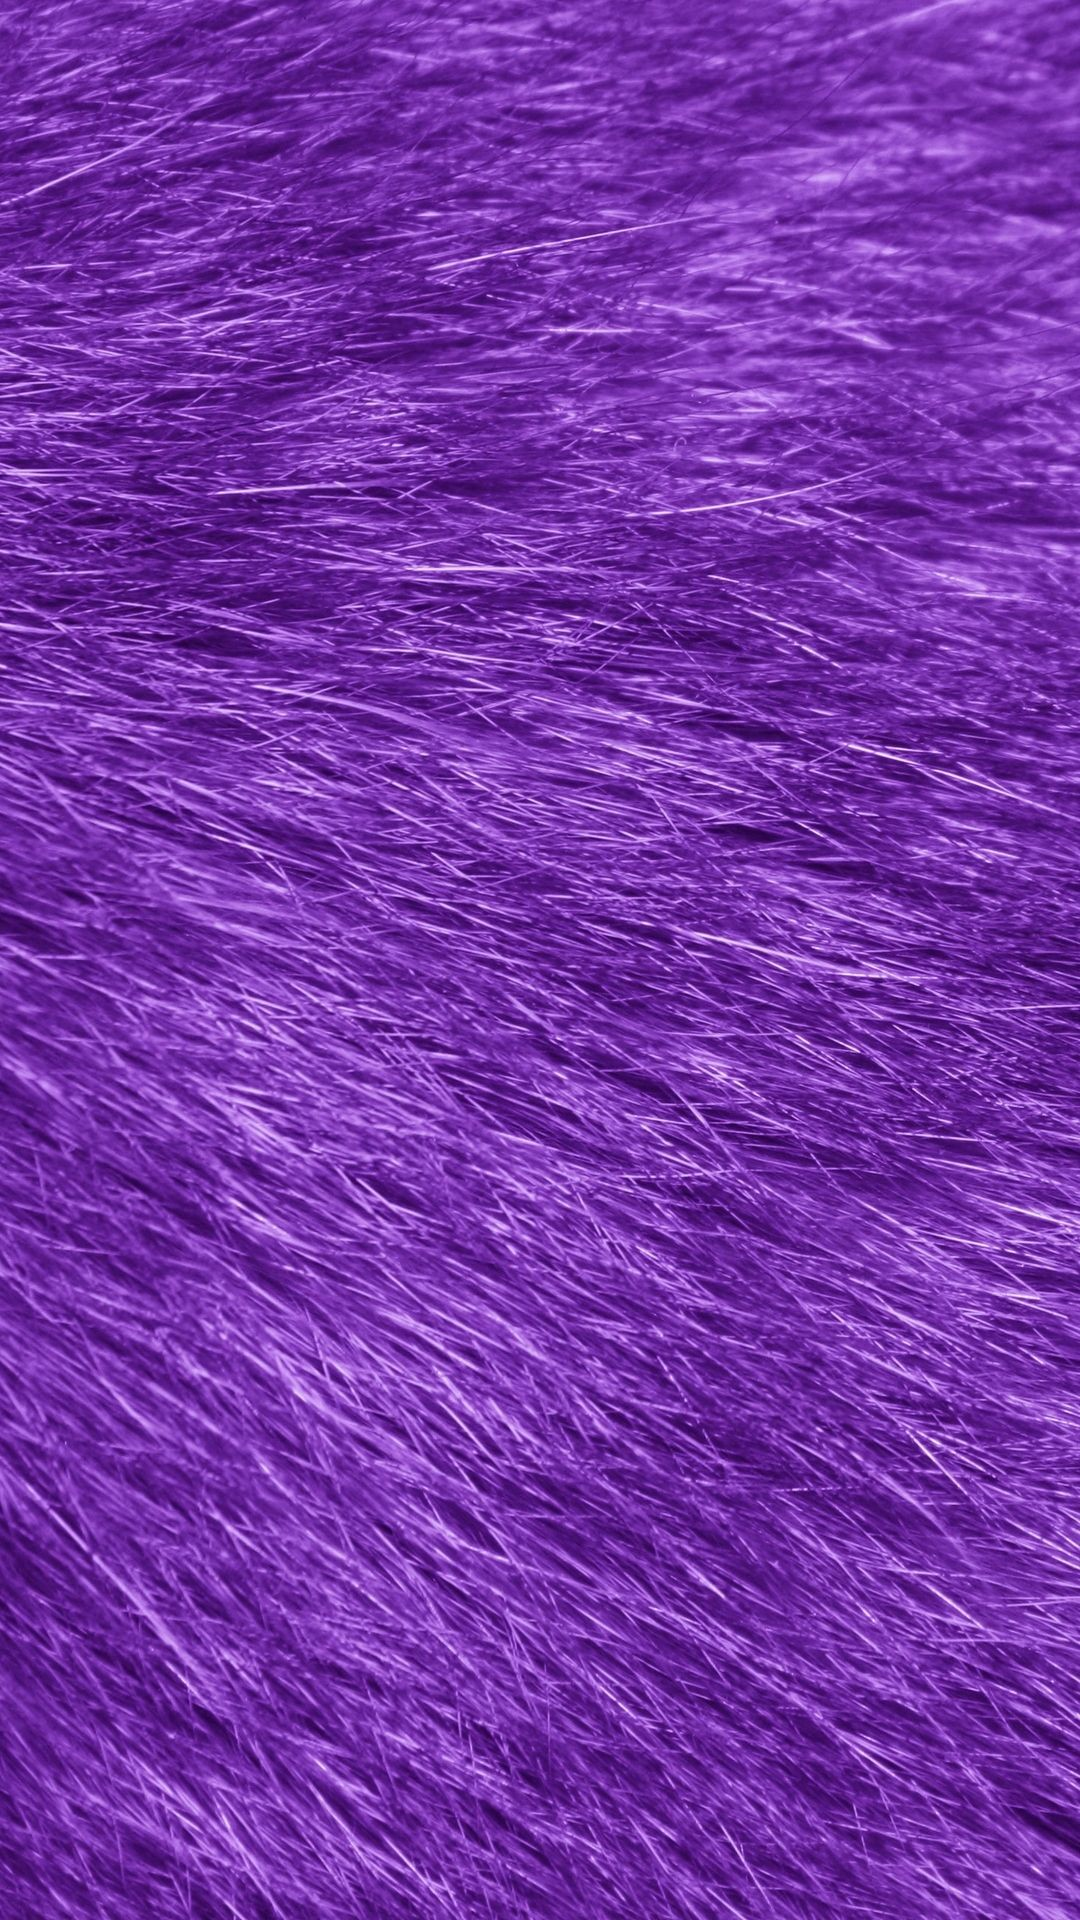 Res: 1080x1920, Purple Fur Texture - Tap to see more of the coolest texturized pattern  wallpapers! - @mobile9